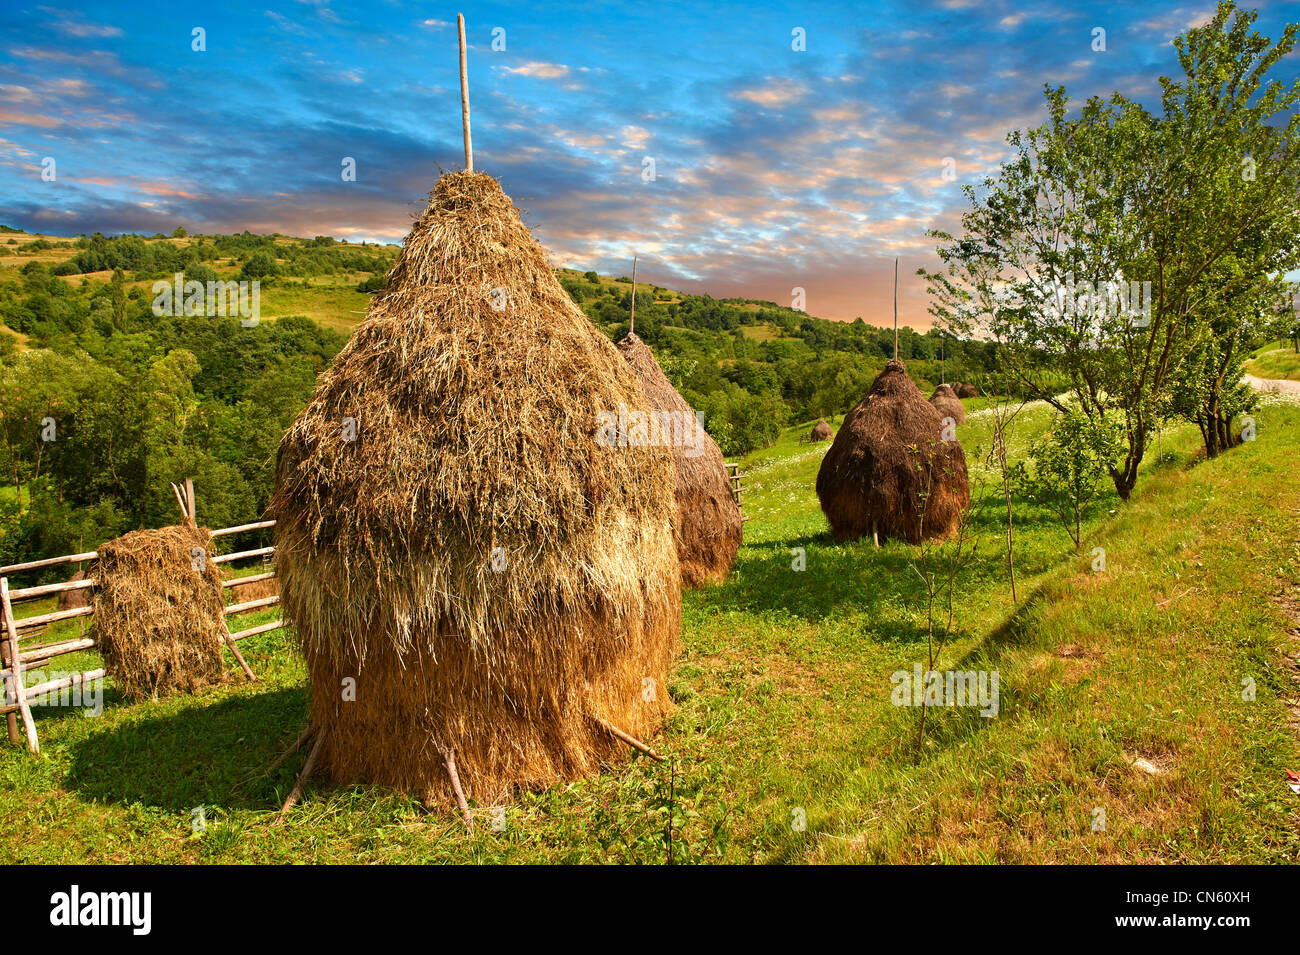 Traditional hay ricks in a wooded field near Sighlet, Maramures, Transylvania - Stock Image